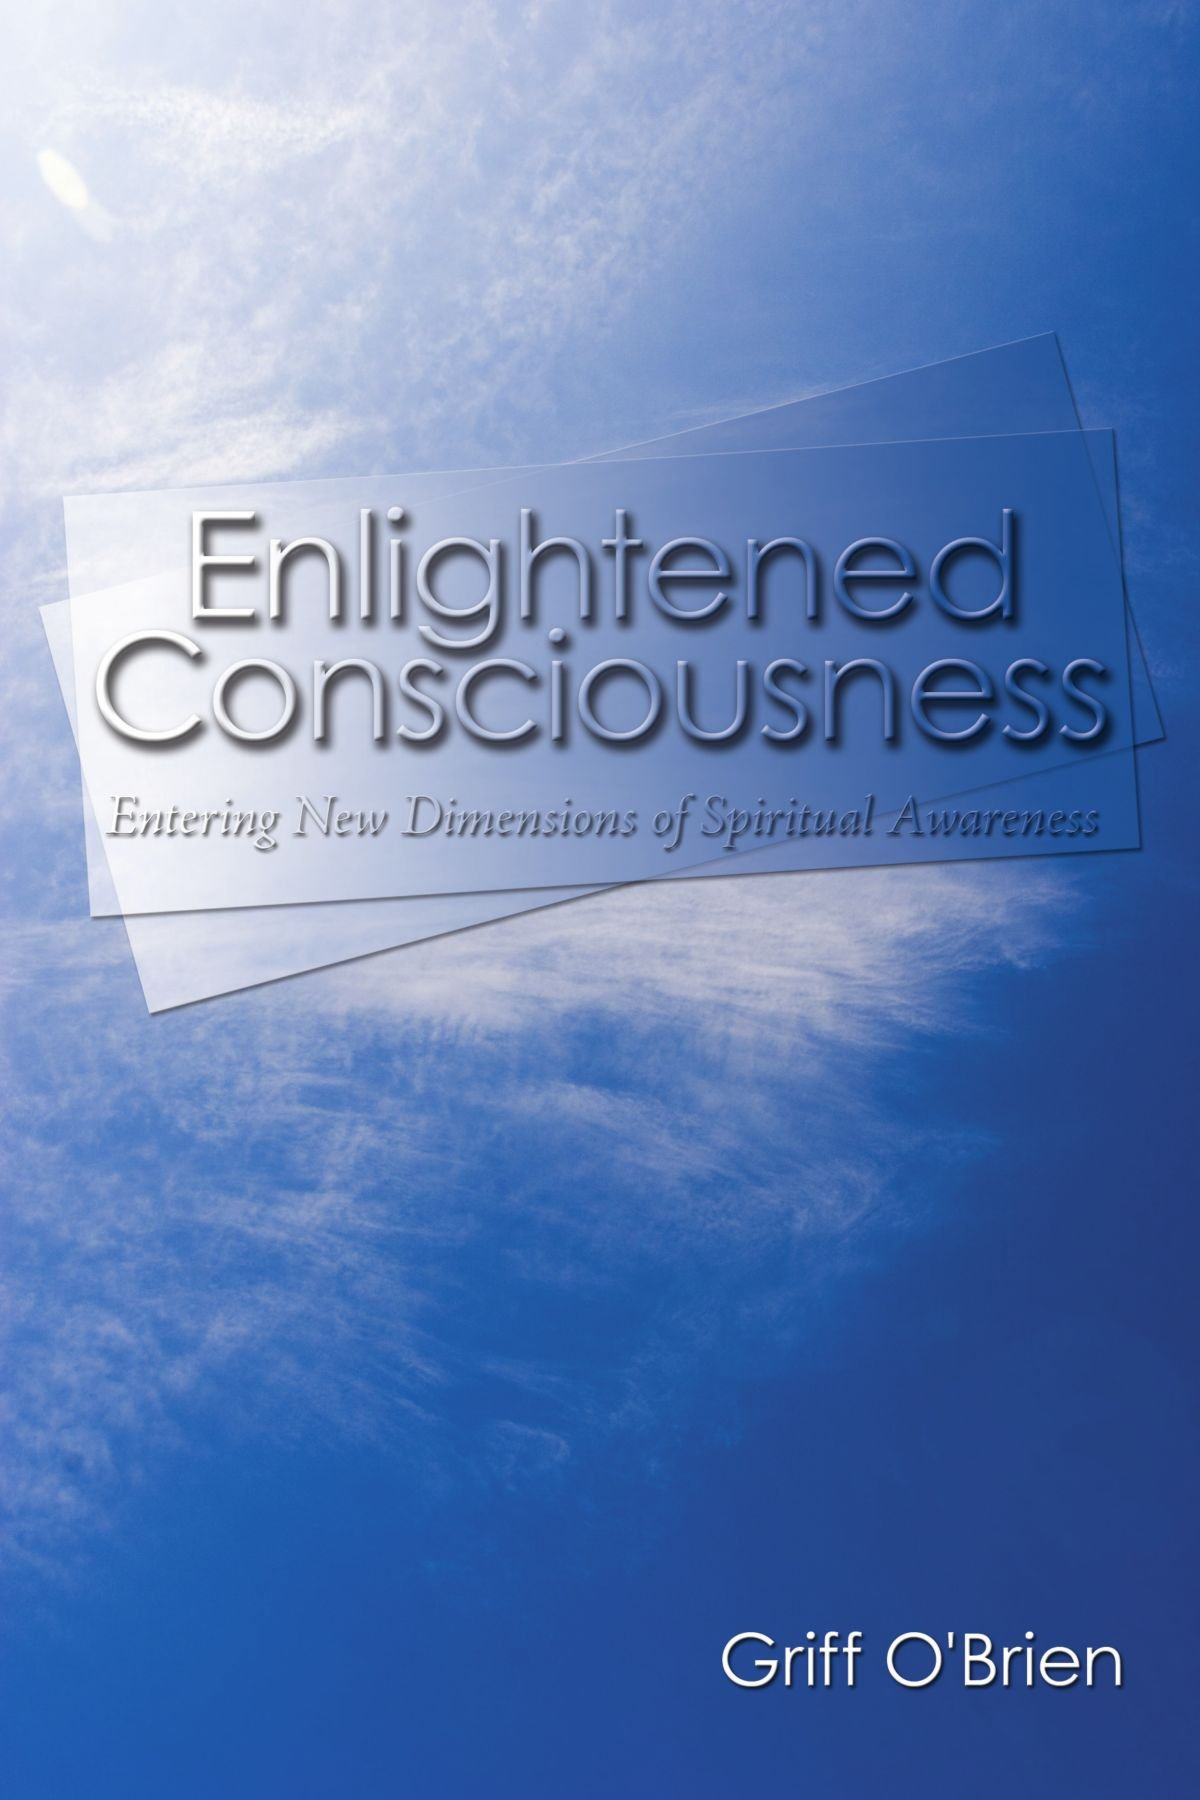 Download Enlightened Consciousness: Entering New Dimensions of Spiritual Awareness PDF